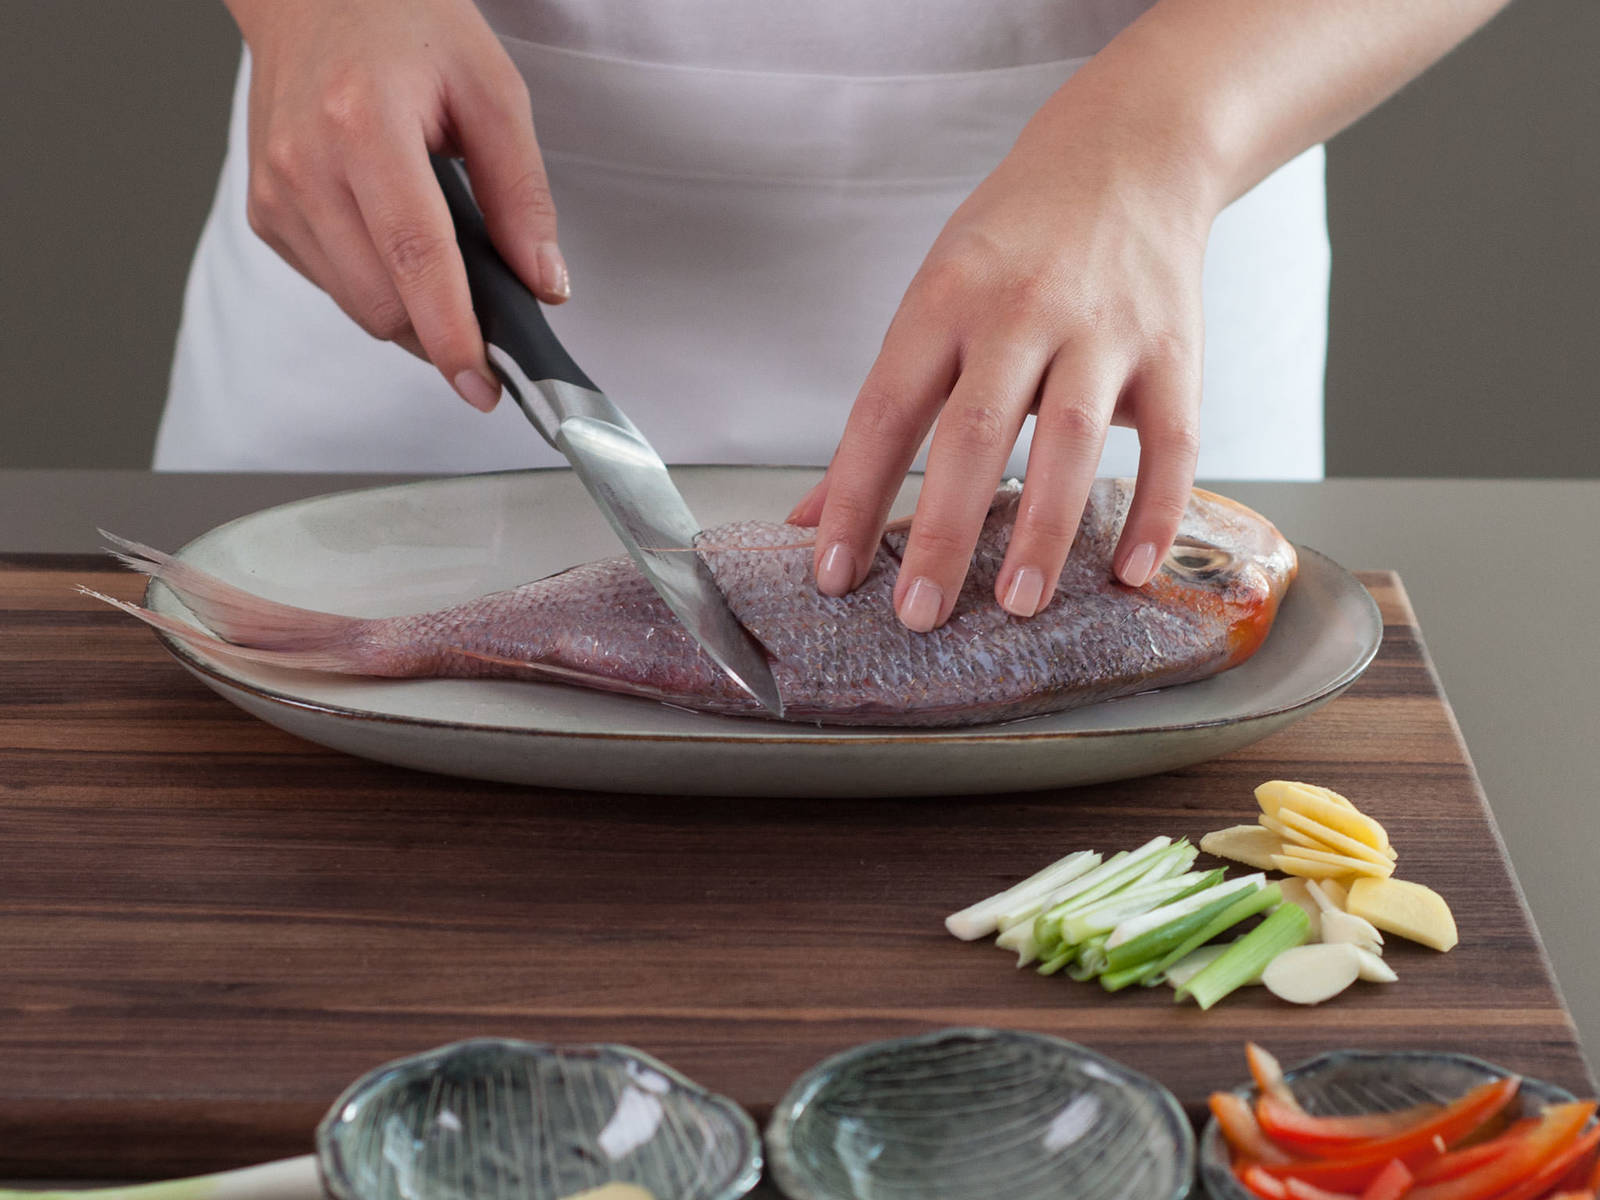 Cut half of ginger and garlic into thin slices. Julienne bell pepper. Cut half of green onion into index finger-length strips. Make two diagonal slits on each side of fish. Sprinkle with salt and pour wine on top.